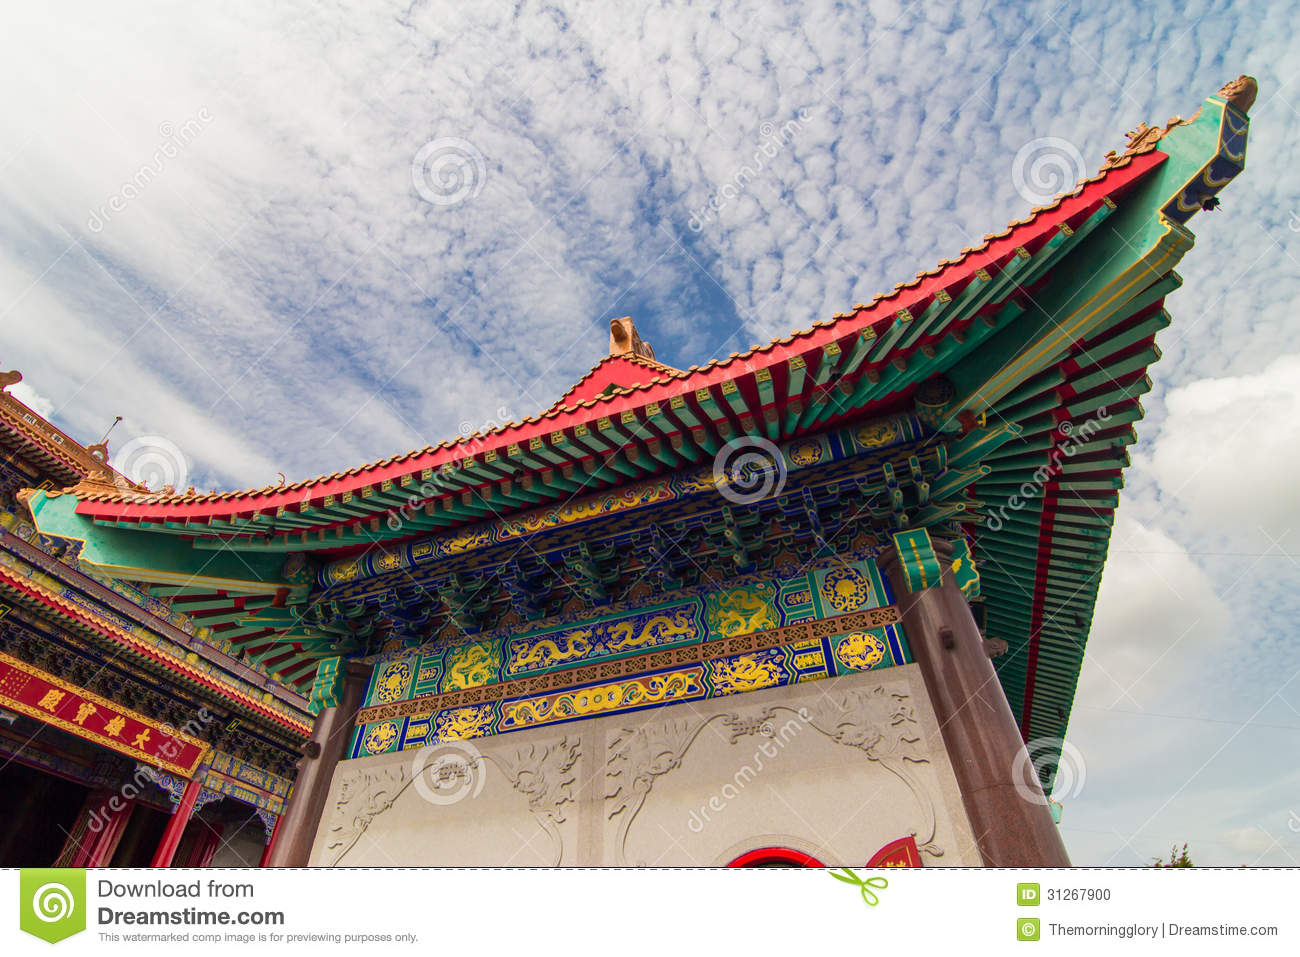 Traditional Construction chinese traditional construction roof stock photo - image: 31267900